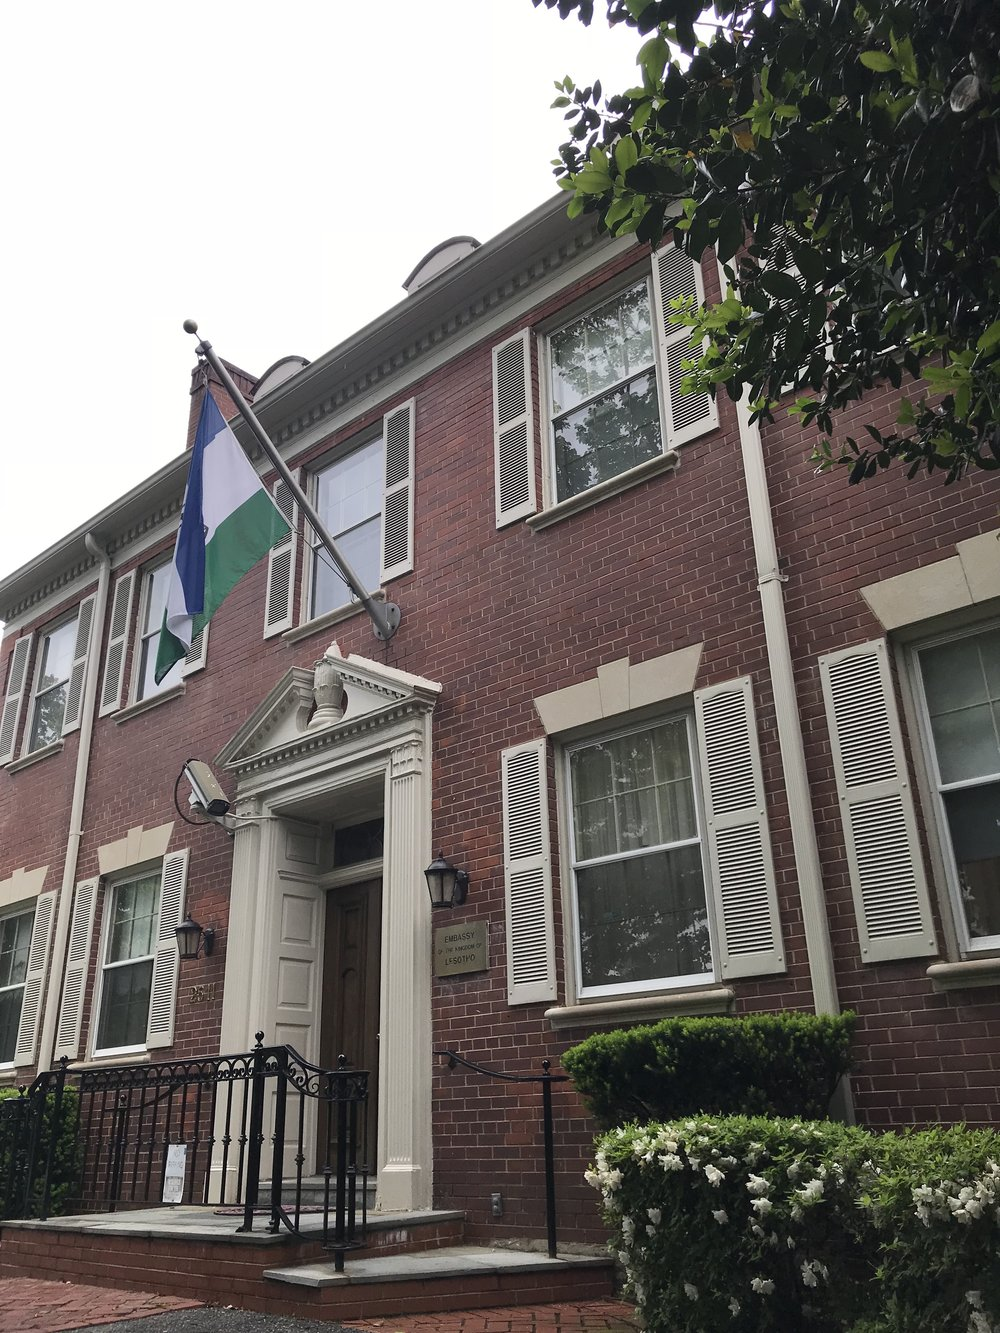 The Embassy of Lesotho.